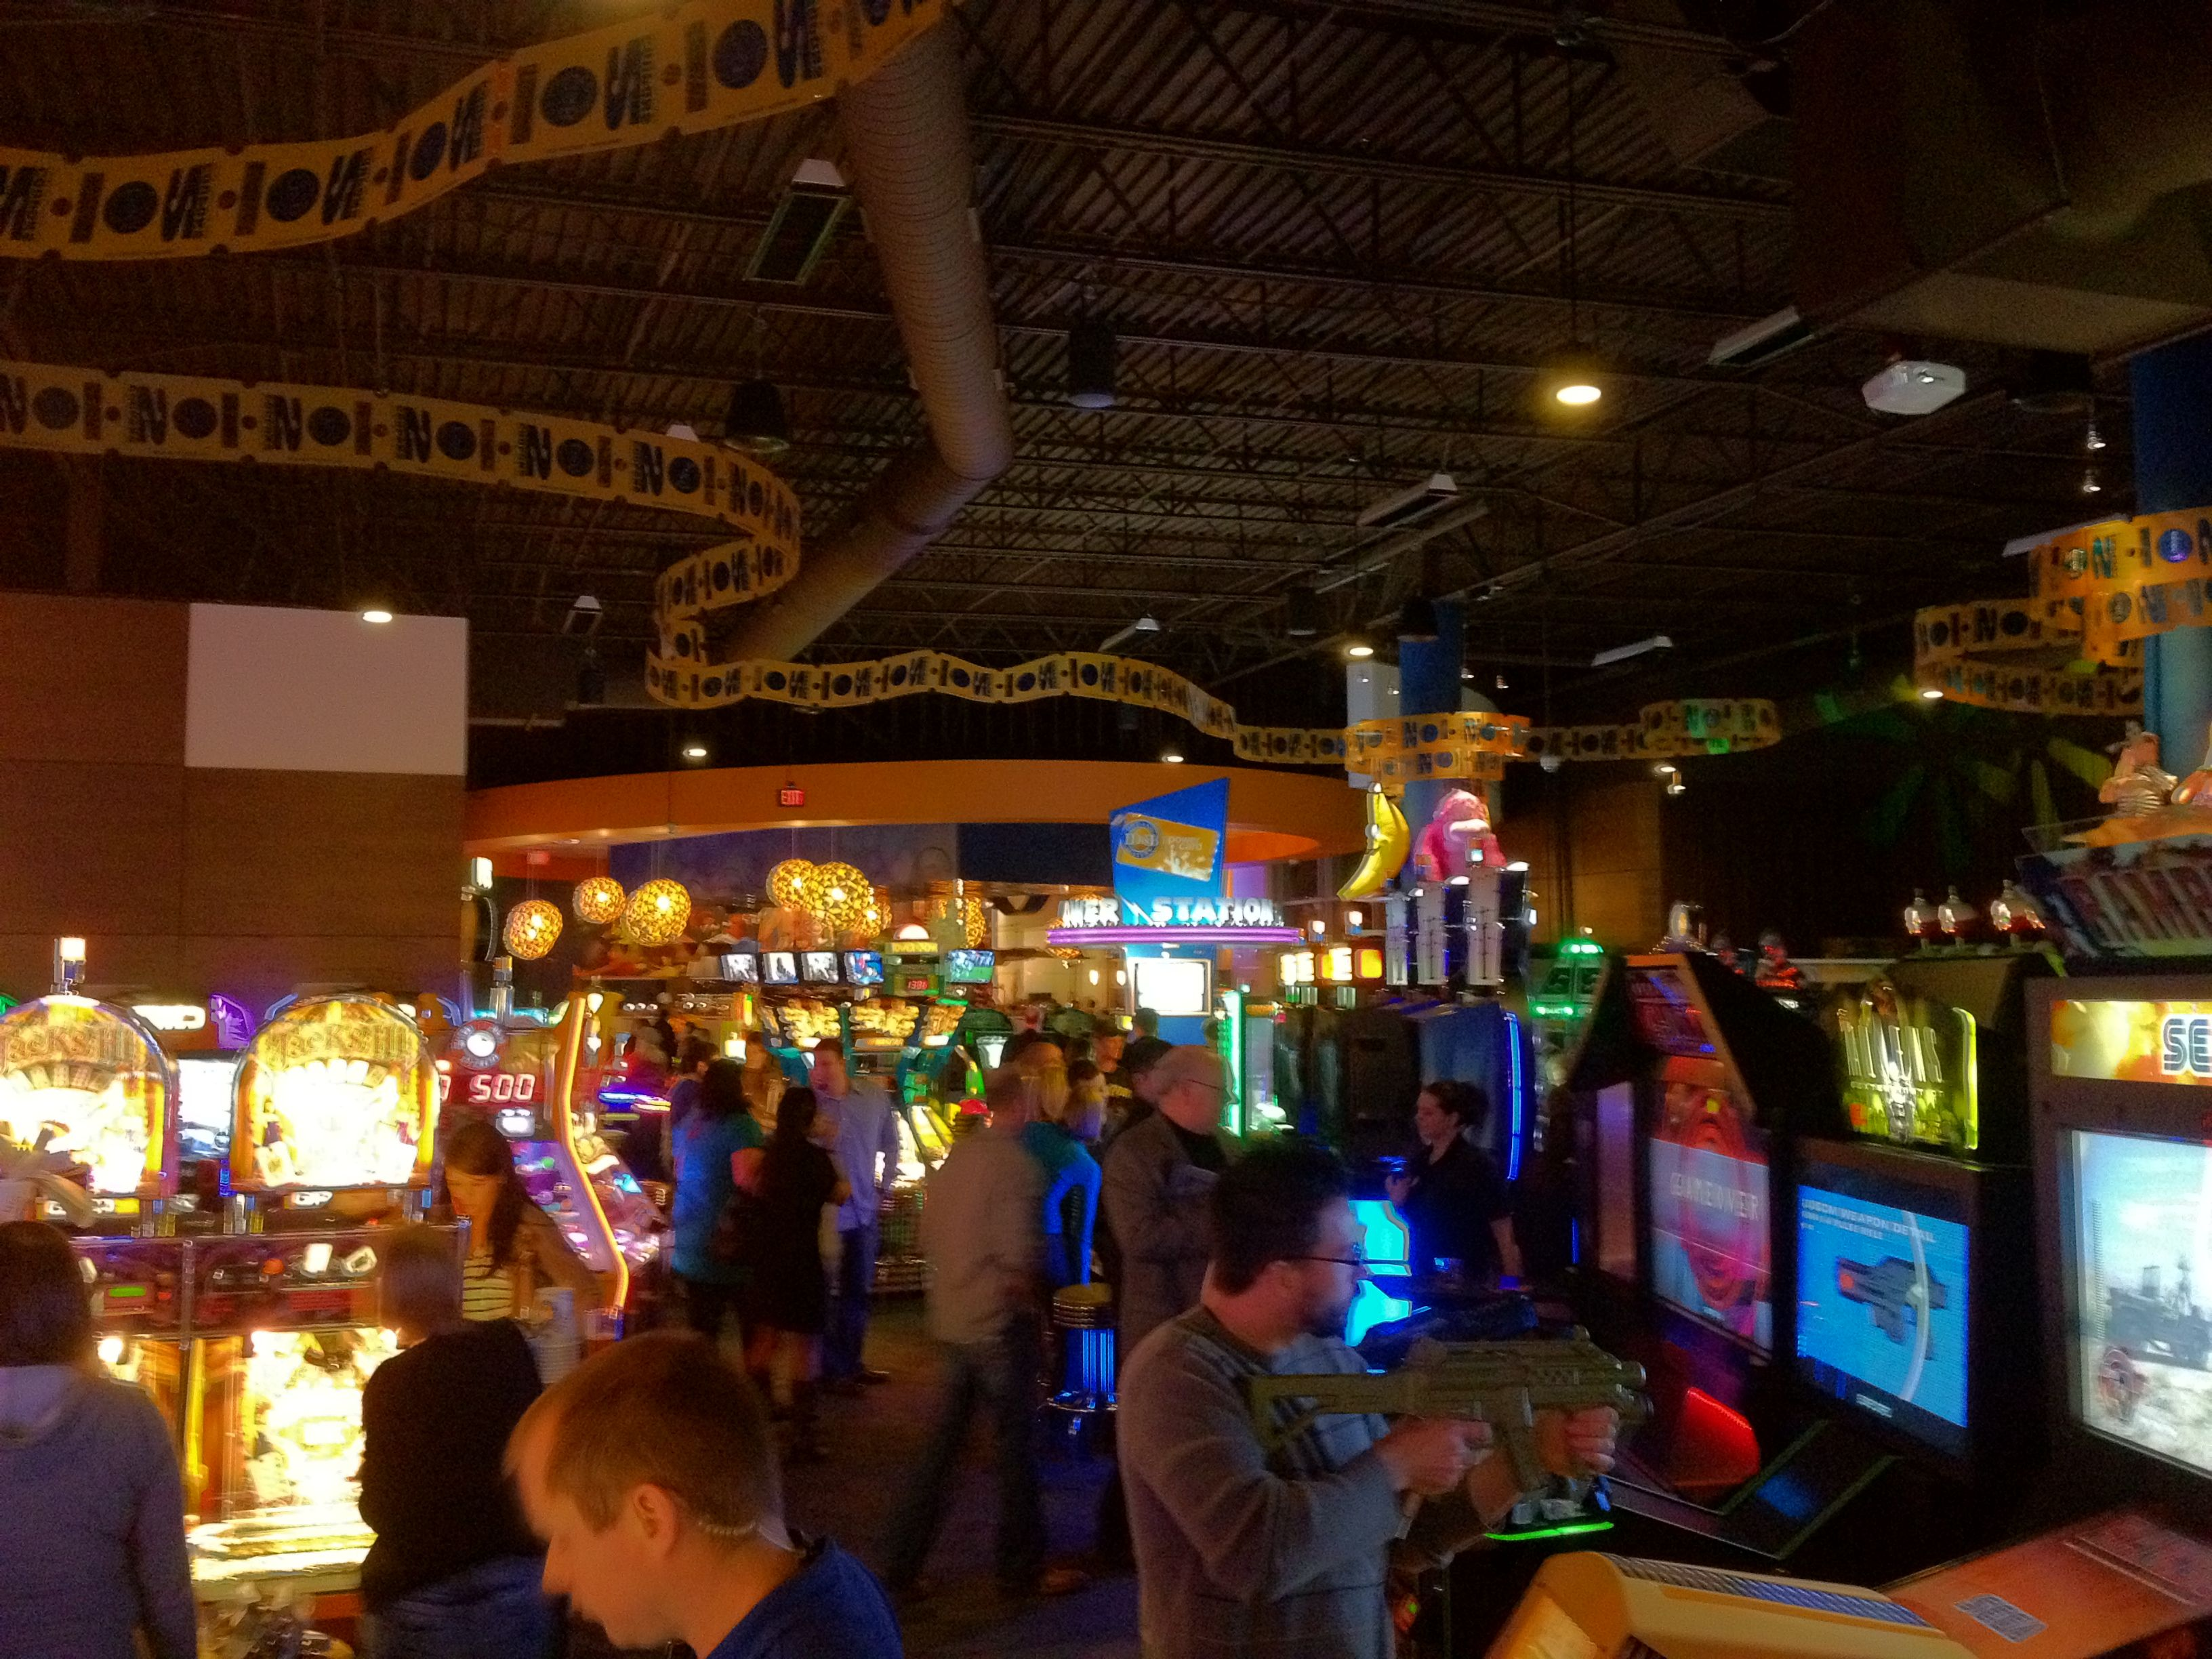 Dave and busters printable coupons january 2013 - Dave Busters Pier Park Aforest16 Psylientbeauty Naturallygigi23